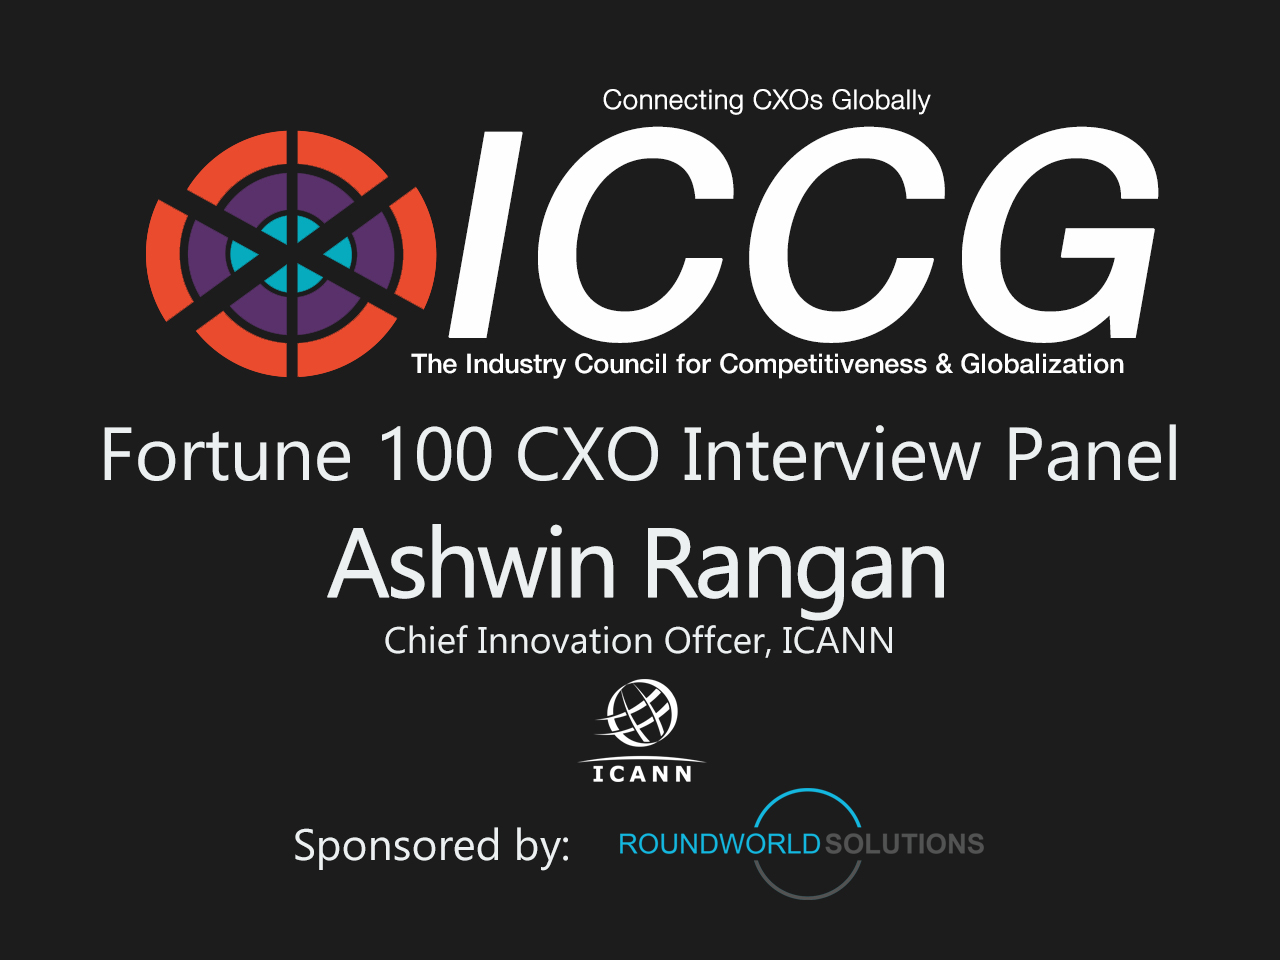 ICCG Fortune 1000 CXO Interview Panel: Ashwin Rangan, CIO, ICANN